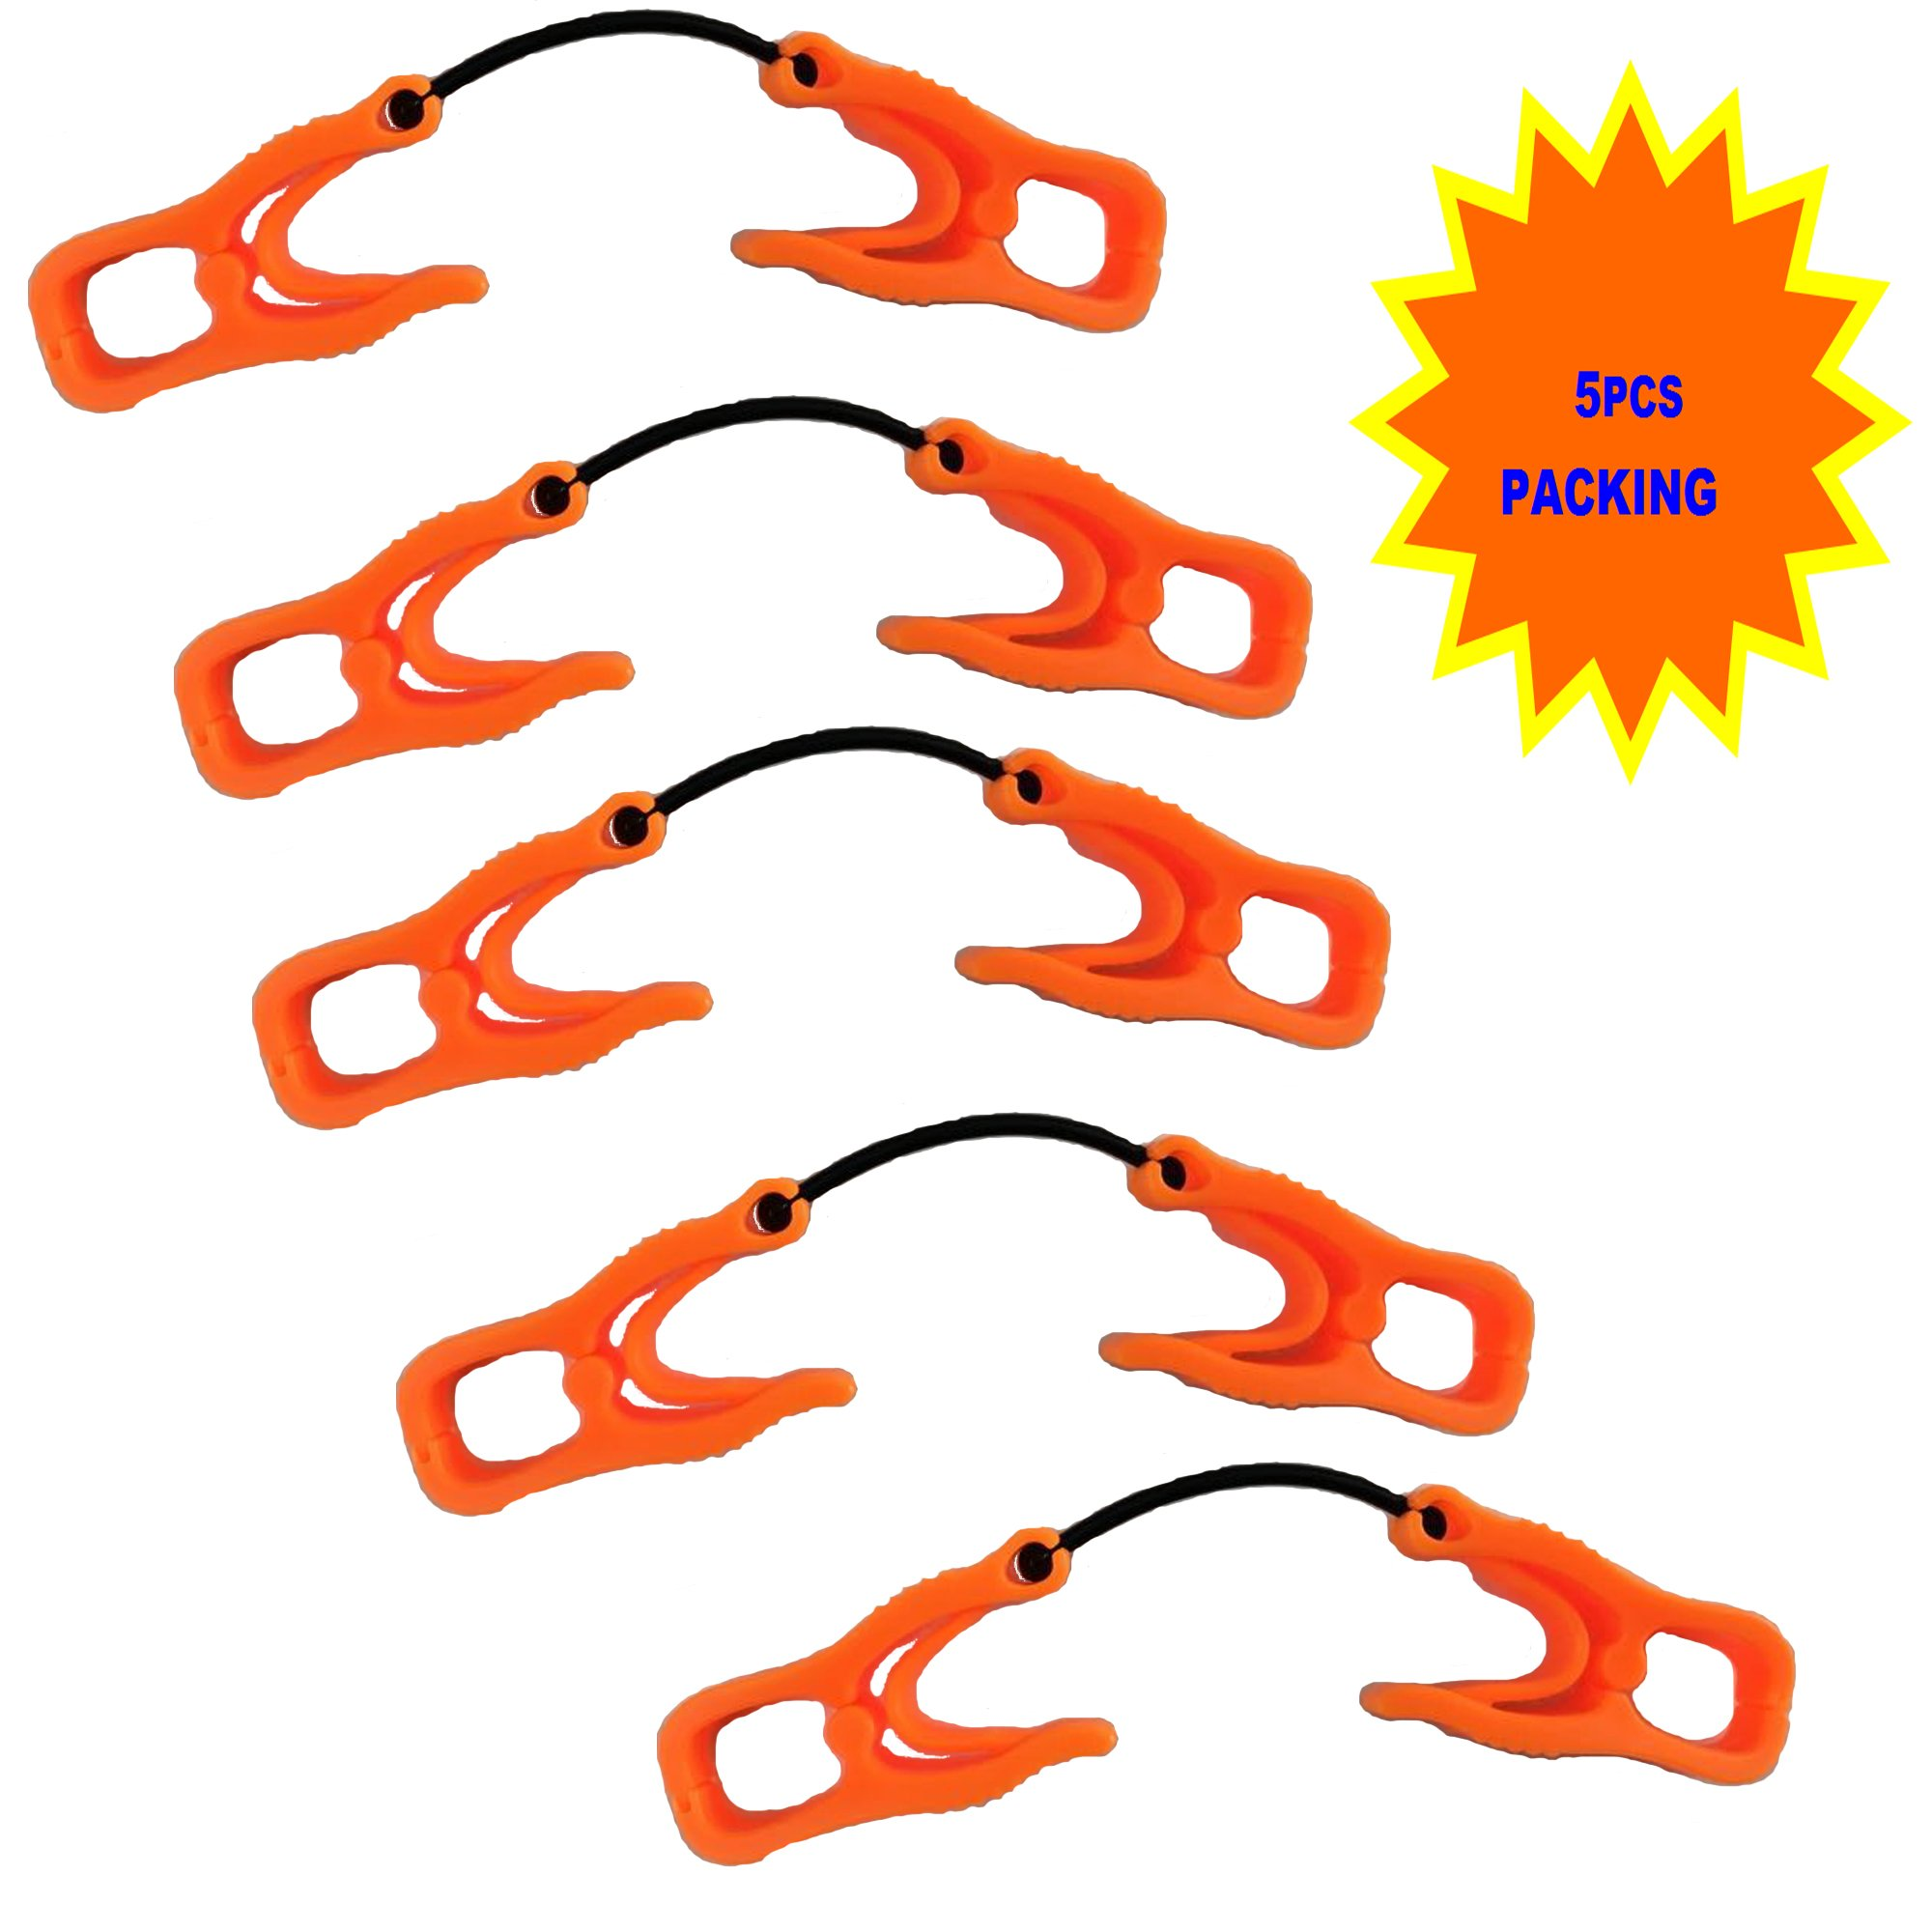 5Pc AT06-5O Orange Sino-Max Glove Grabber Clip Holder Guard Work Safety Clip Glove Keeper, Neon POM,Reduce Hand Injury and Clip, Grab, Attach Gloves, Towels, Glass, Helmet